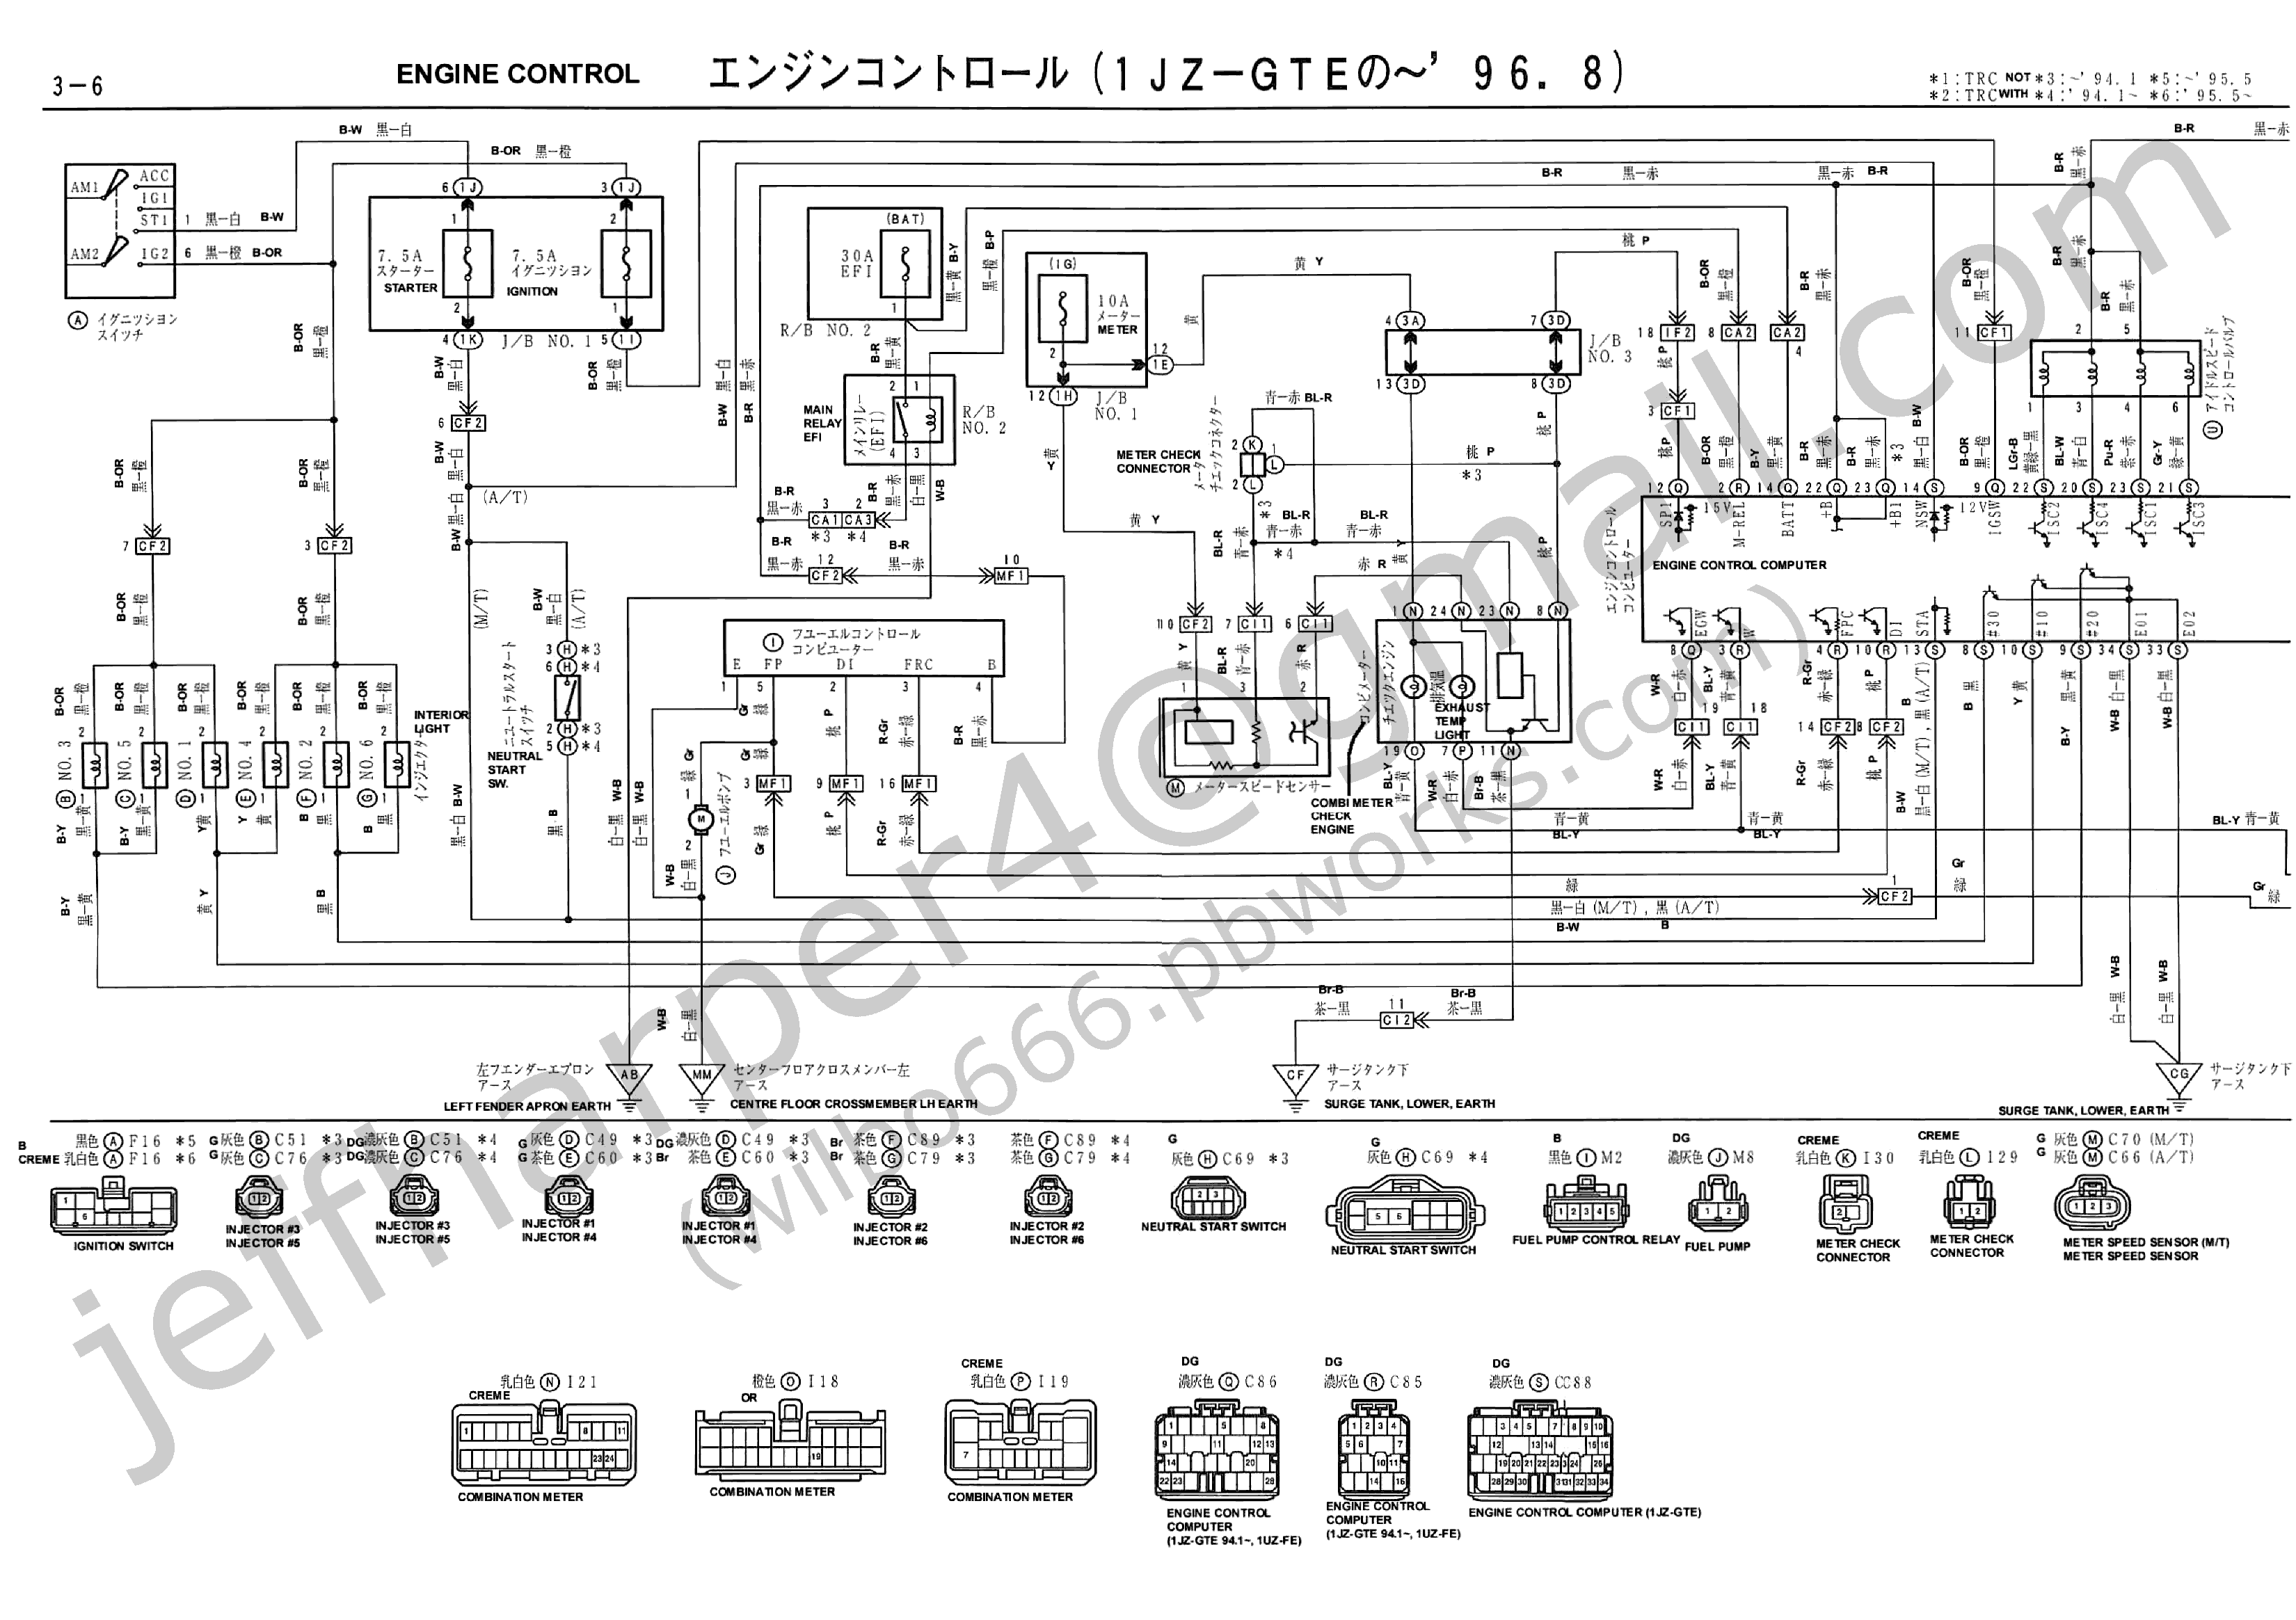 engine diagram for 3 1 engine 1jz engine diagram abs sensor/speedometer not working 95+ - clublexus - lexus ... #7